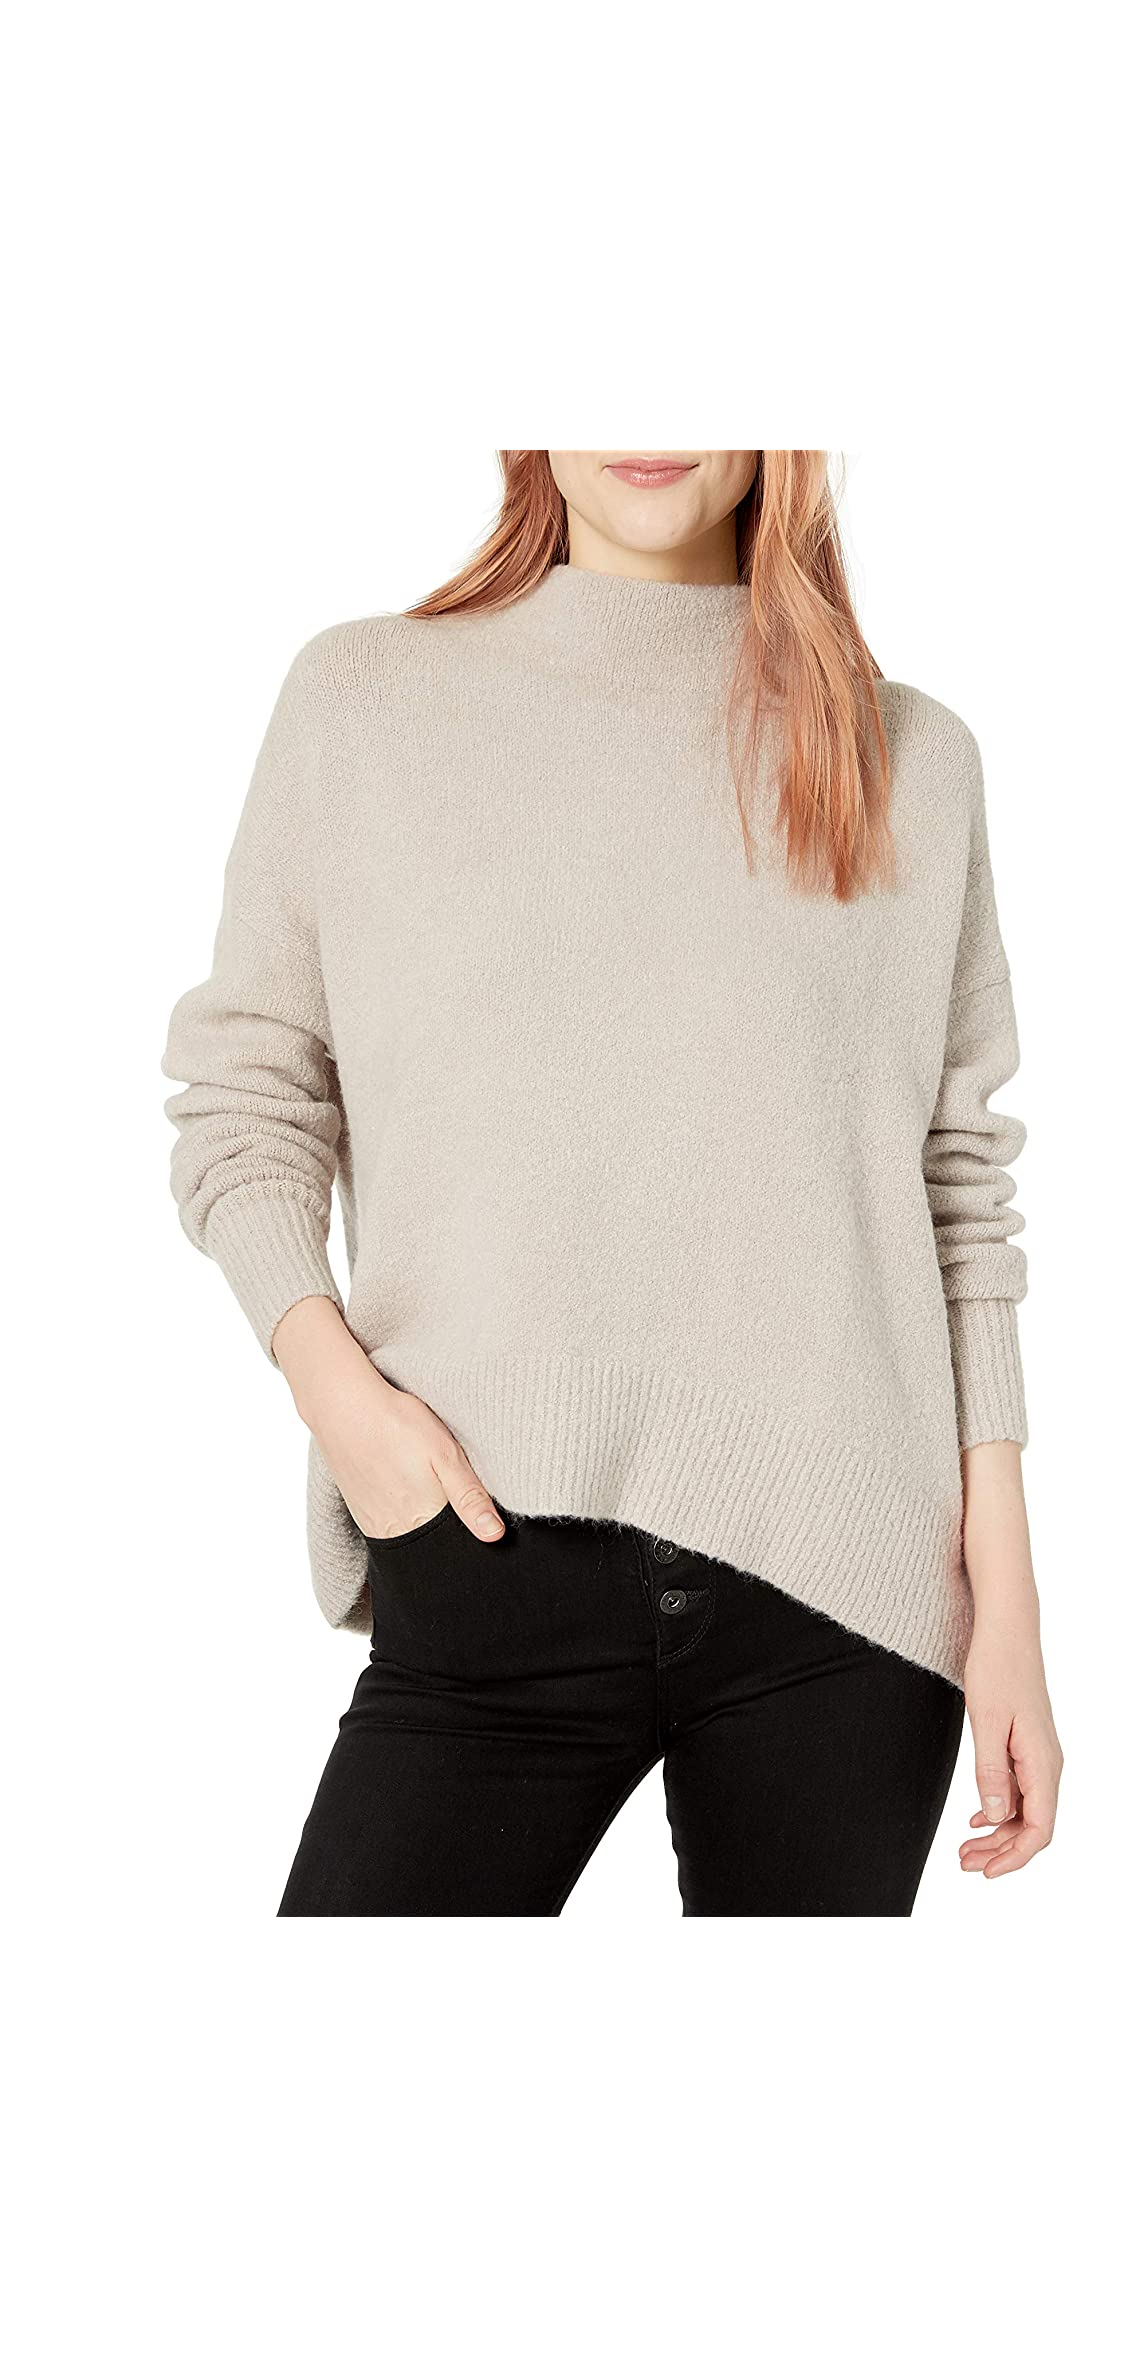 Women's Mock Neck Cozy Sweater